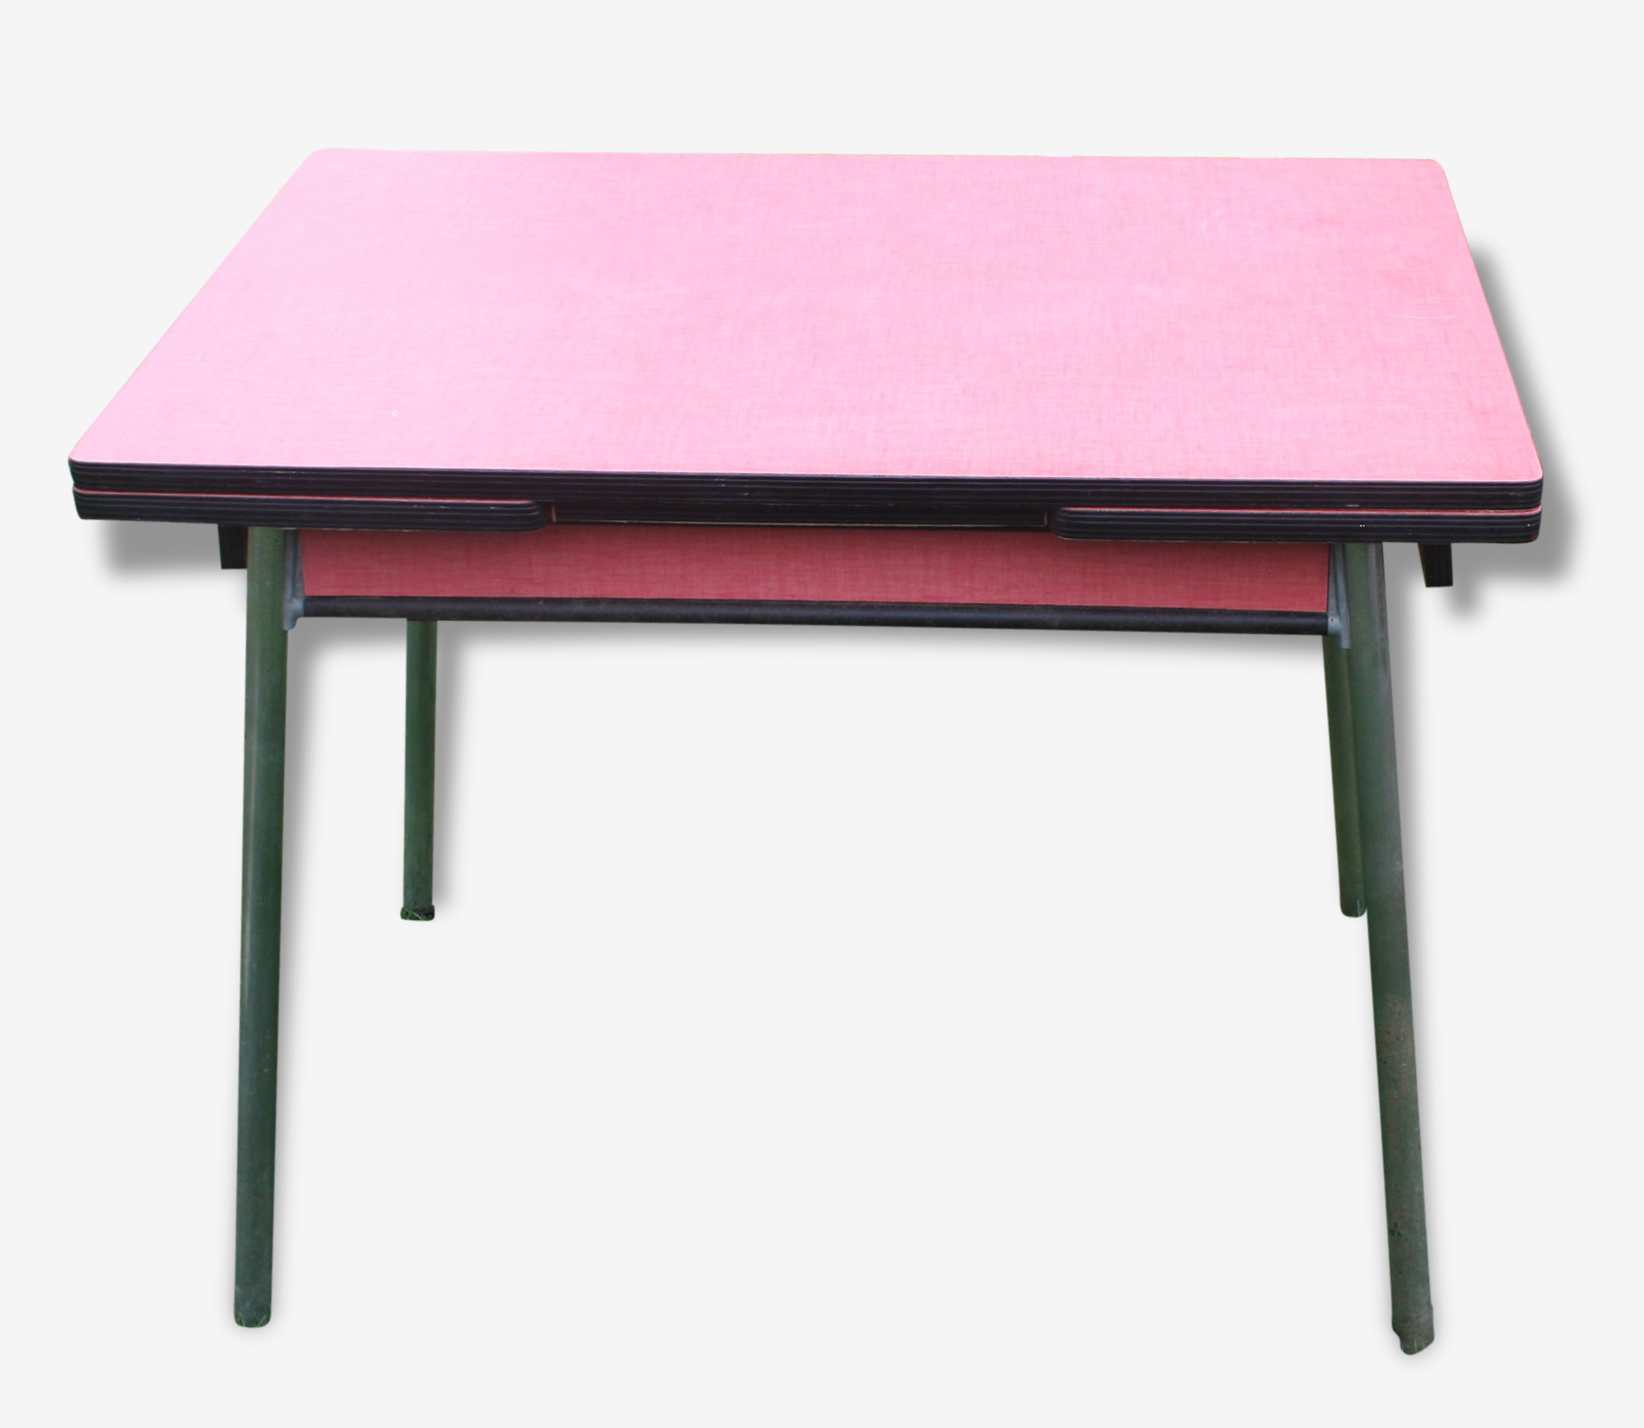 Table formica rouge avec rallonges